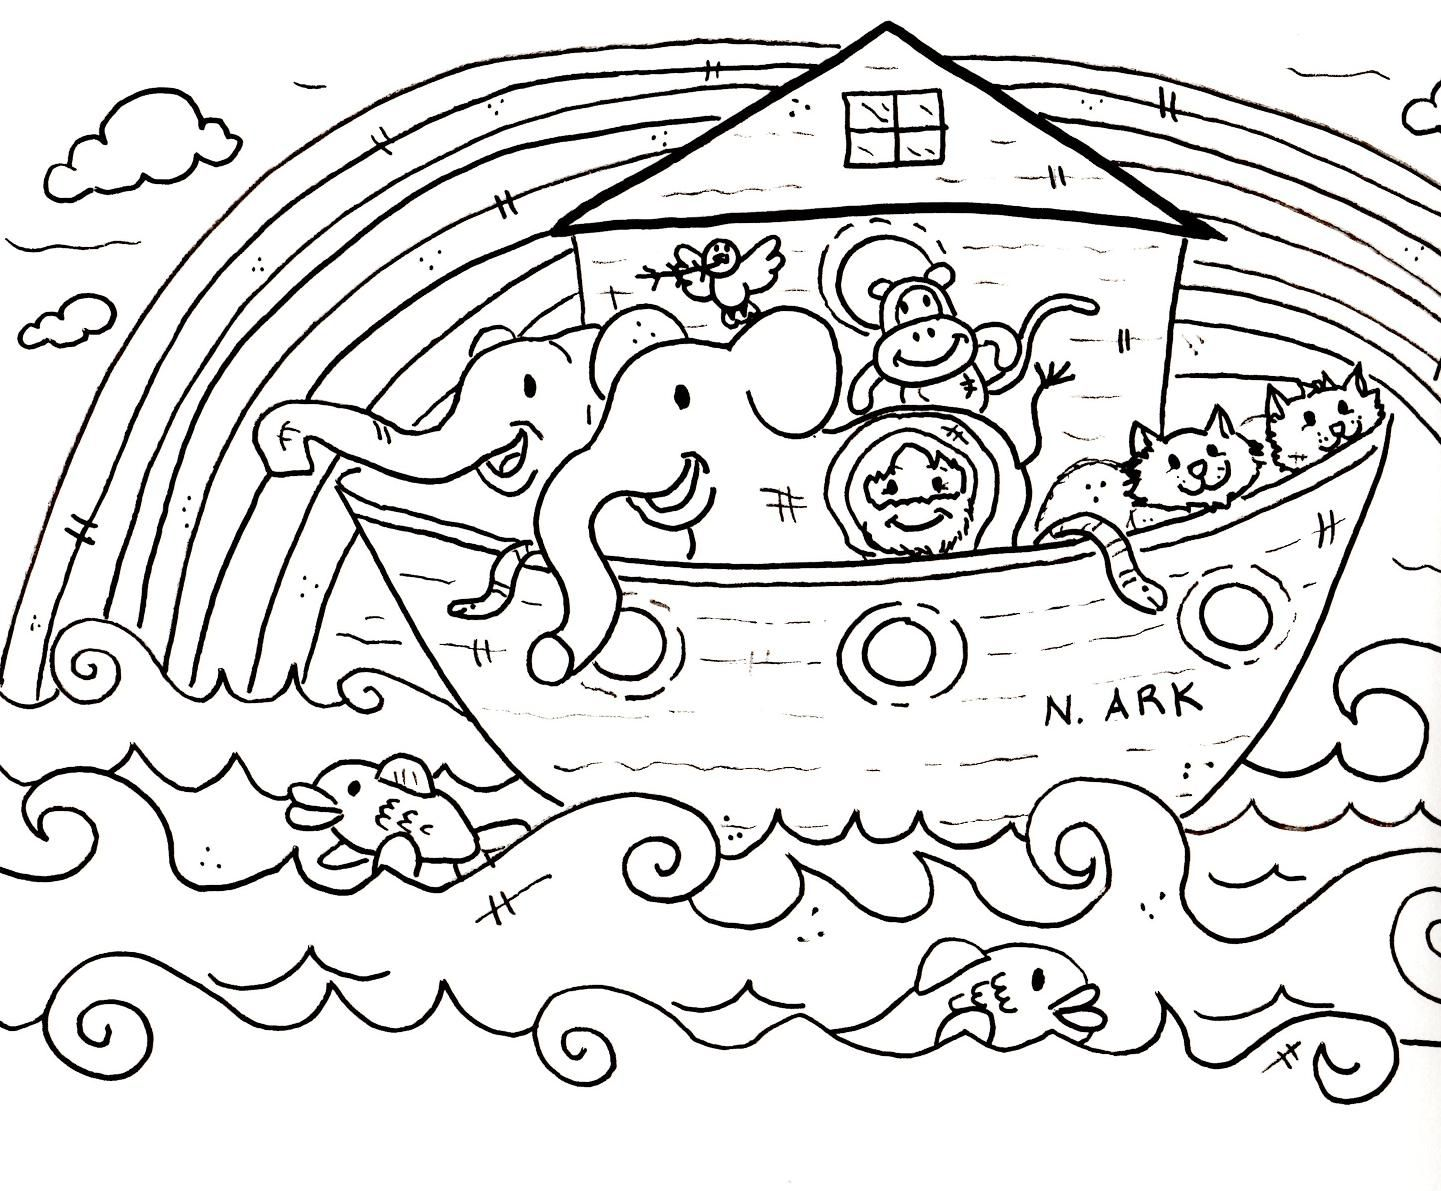 Online coloring pages for children to print - Children Coloring Pages For Church Sunday School Coloring Pages Coloring Pages